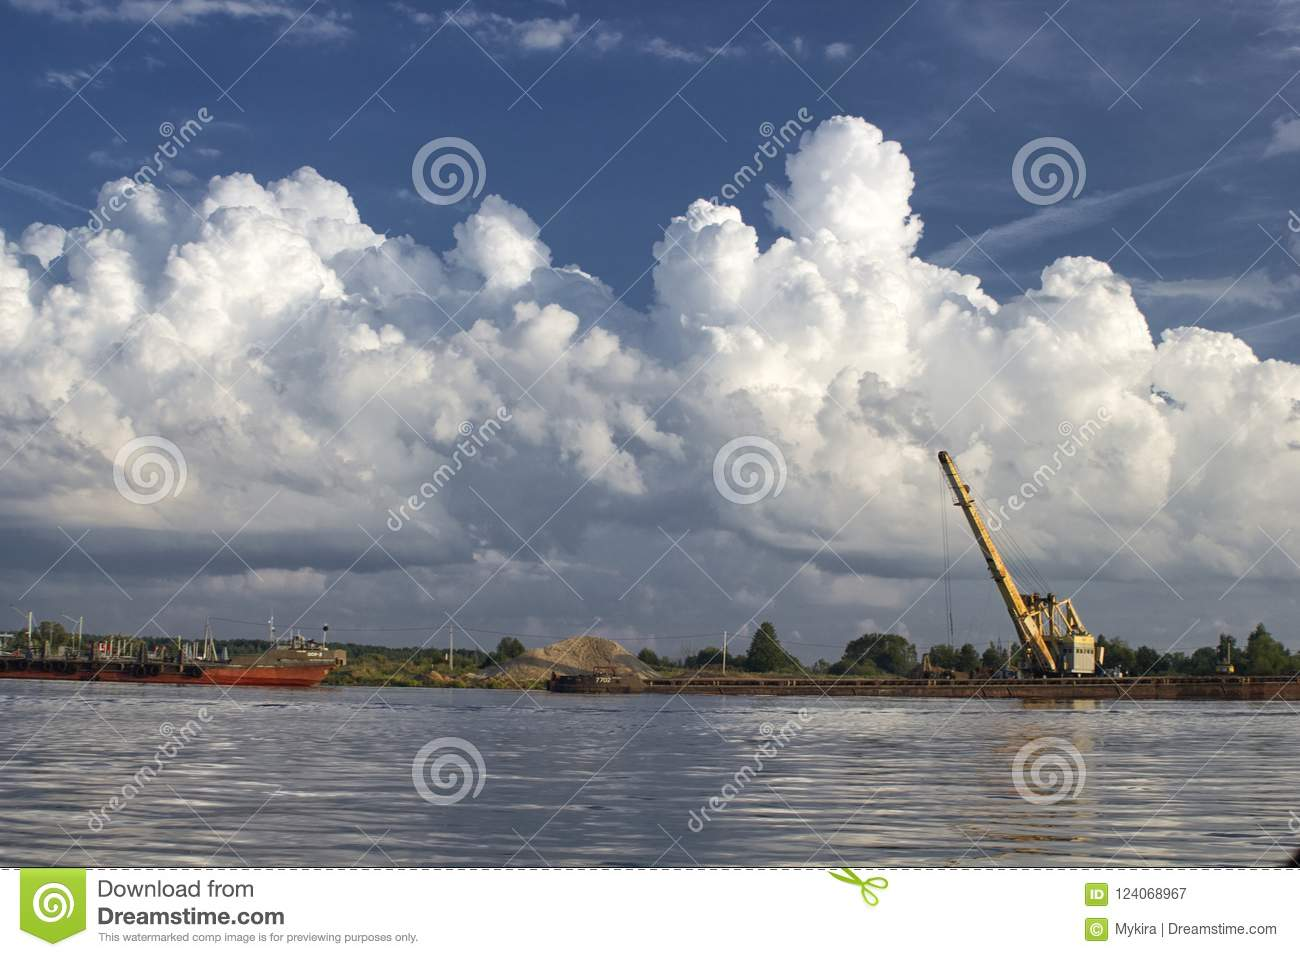 Download Sand Charging On Volga, Russia With Crane And Boat Stock Image - Image of hoist, constraction: 124068967